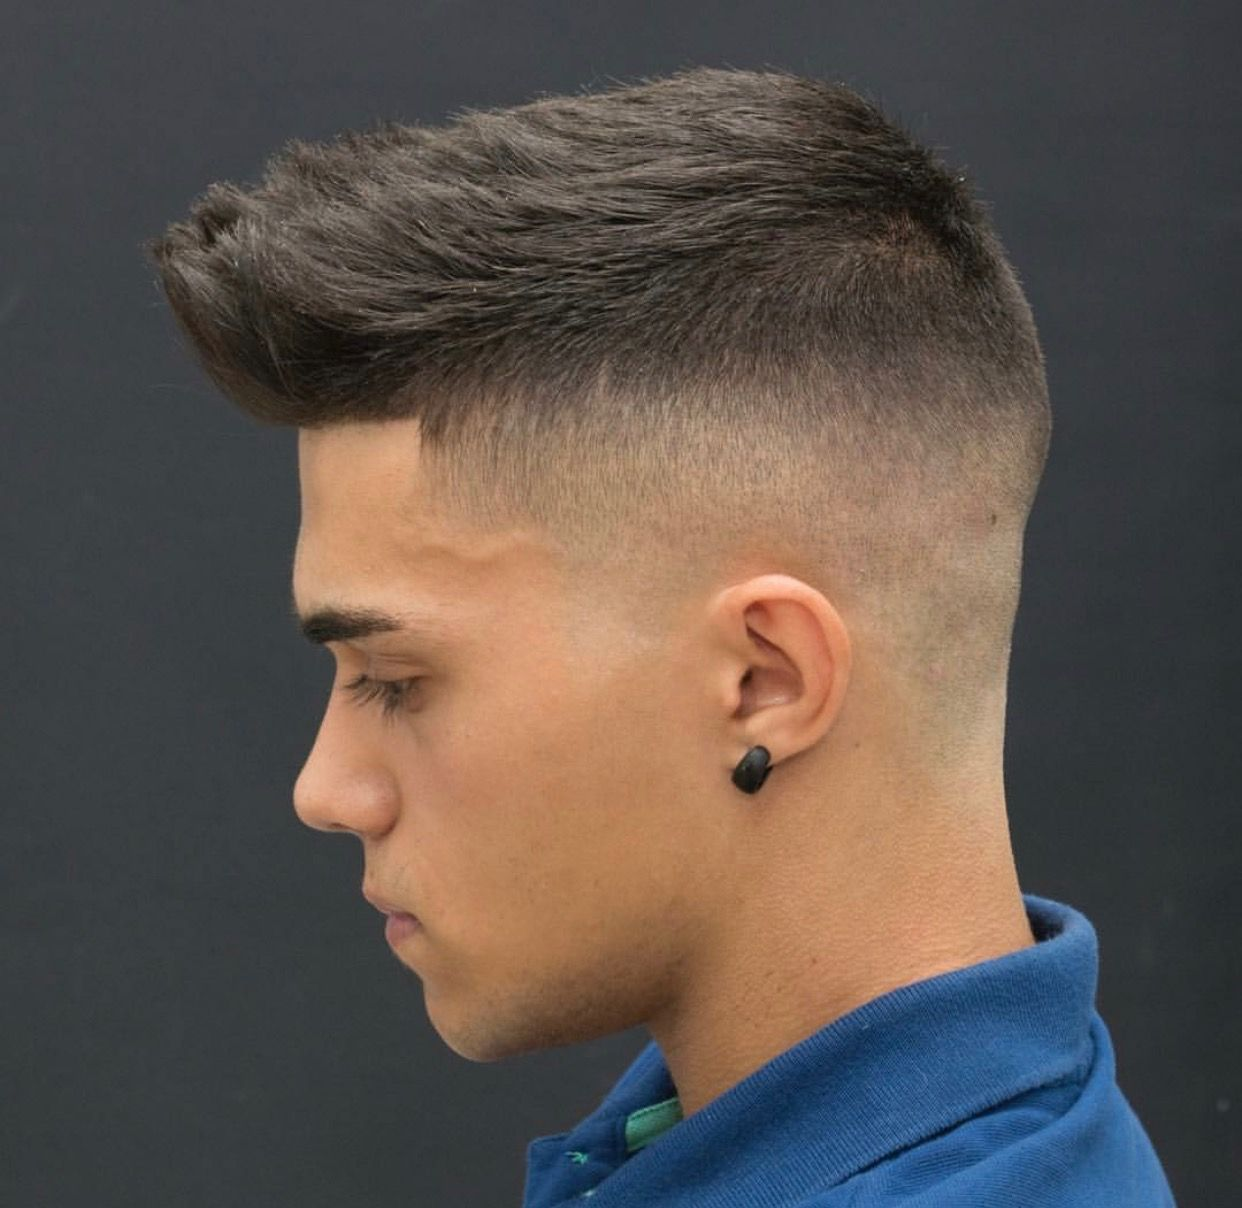 Pin By More On Men S Hairstyles Short Textured Hair Textured Hair Mens Haircuts Short